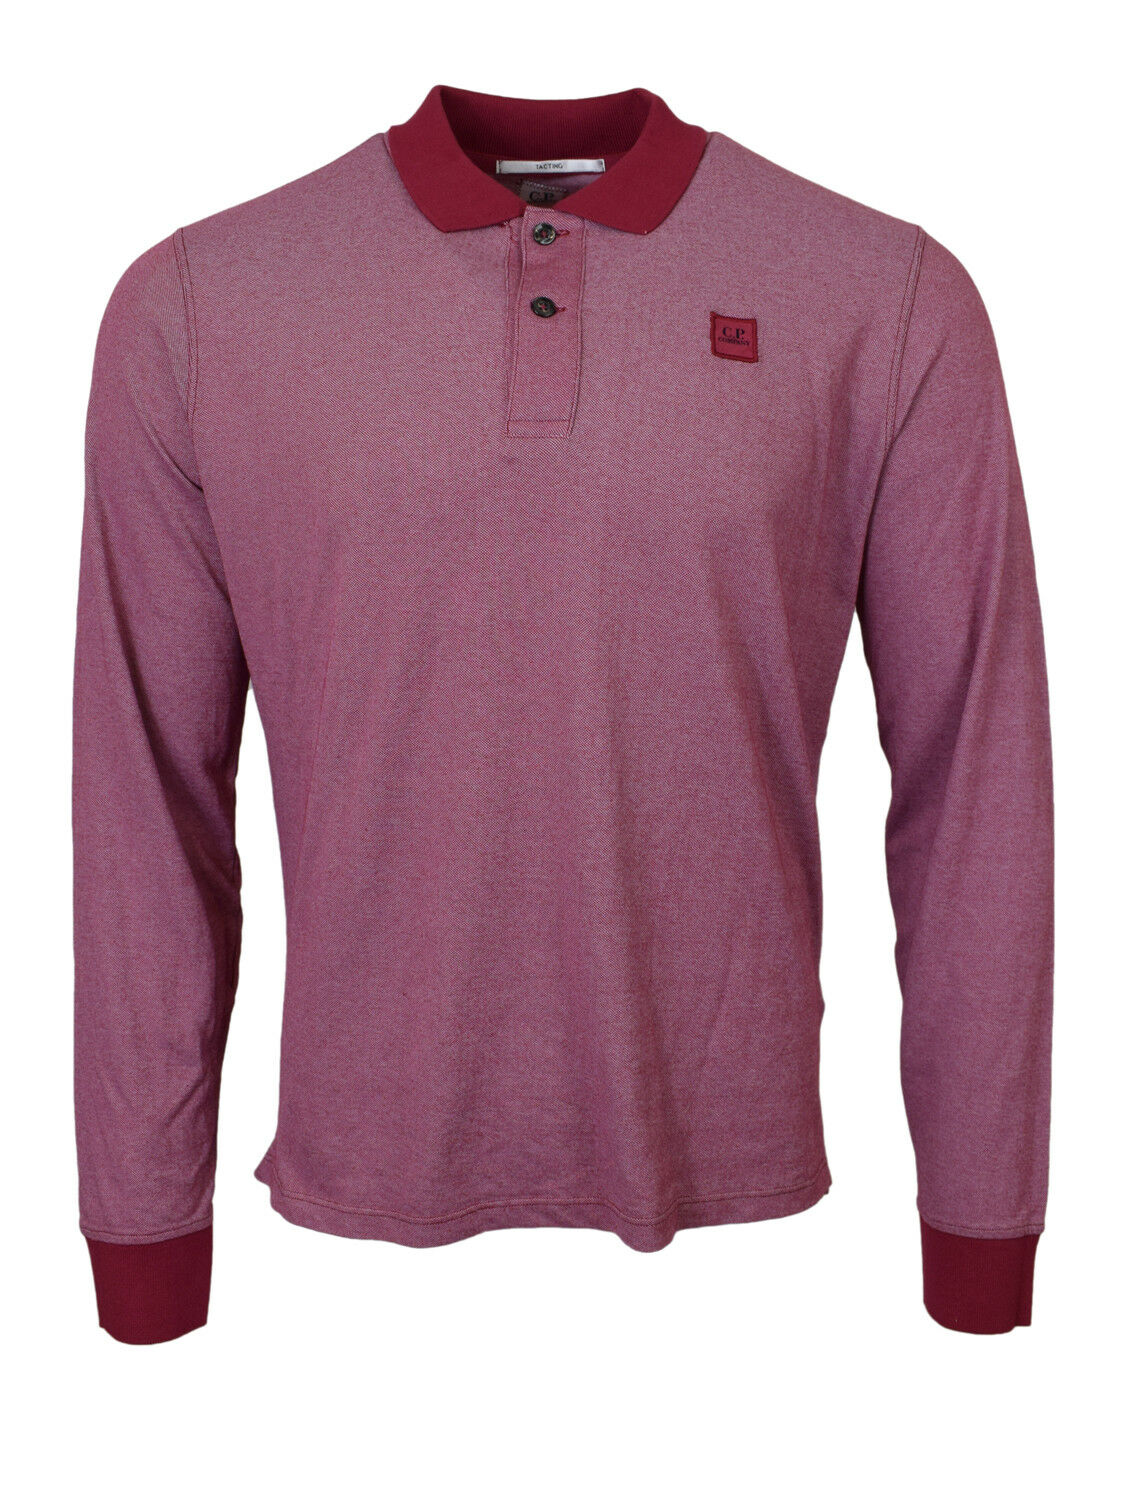 CP Company Tacting Long Sleeved Polo Shirt Red BNWT RRP